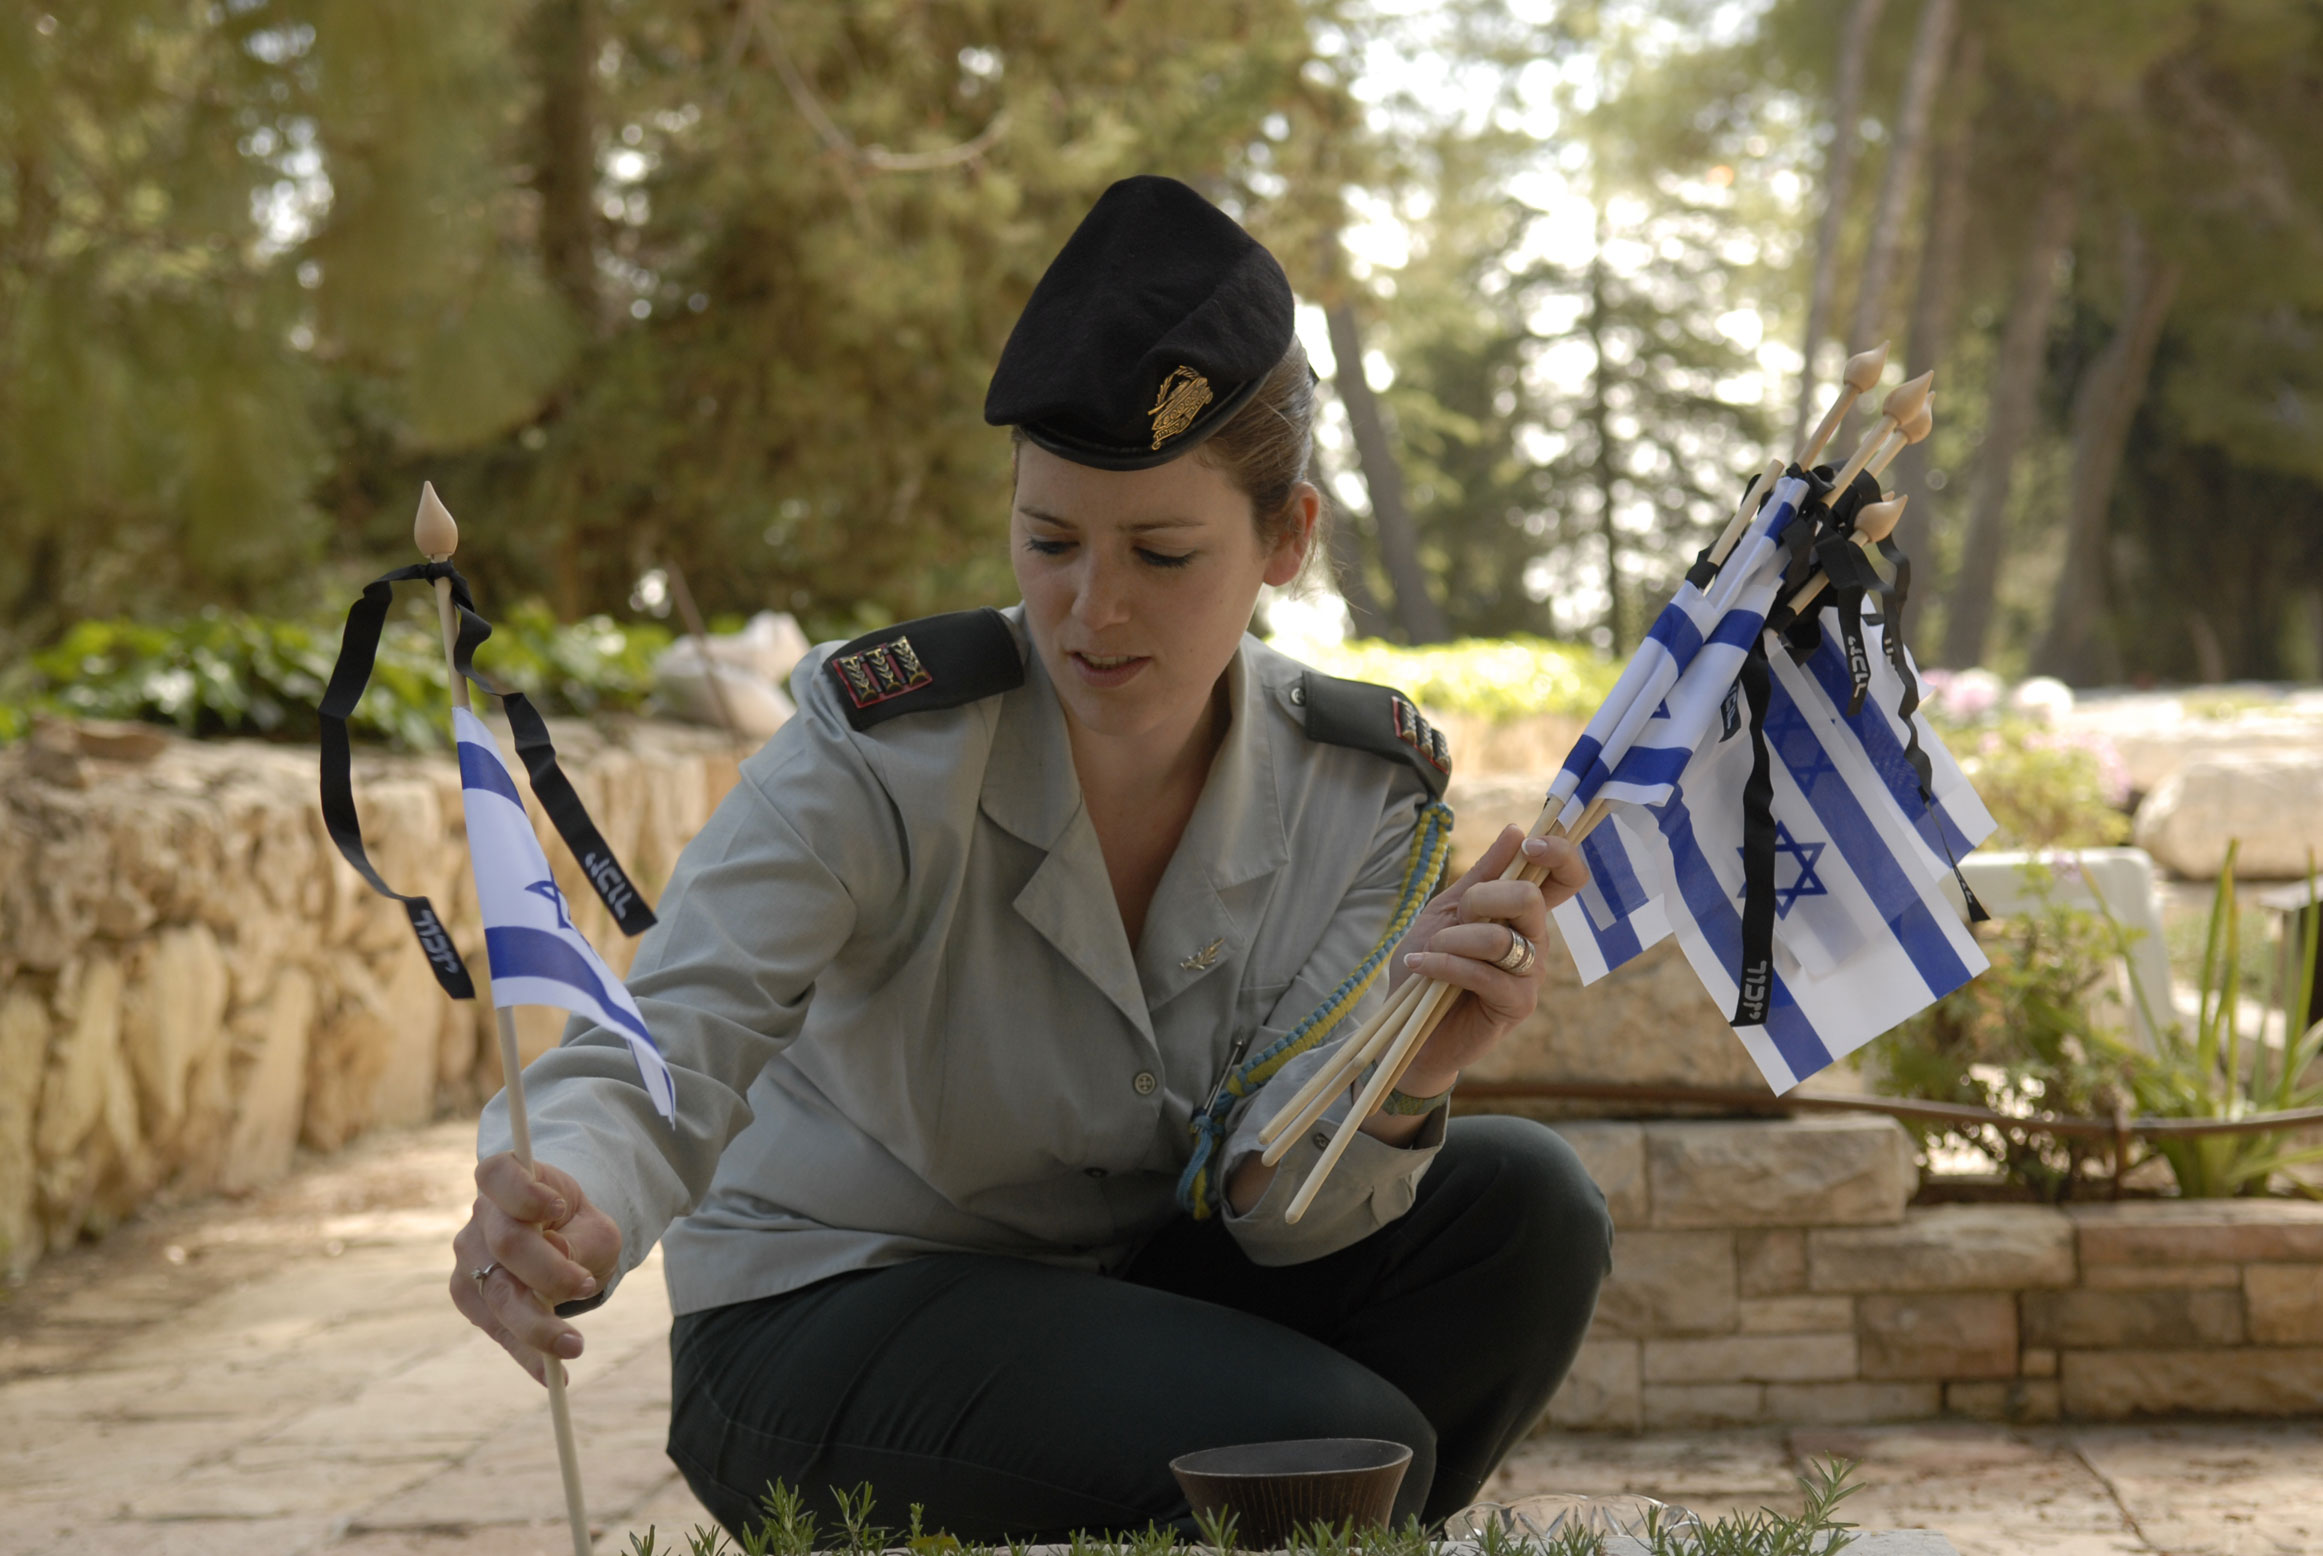 Israeli soldier plants flag at an Israeli soldier's grave